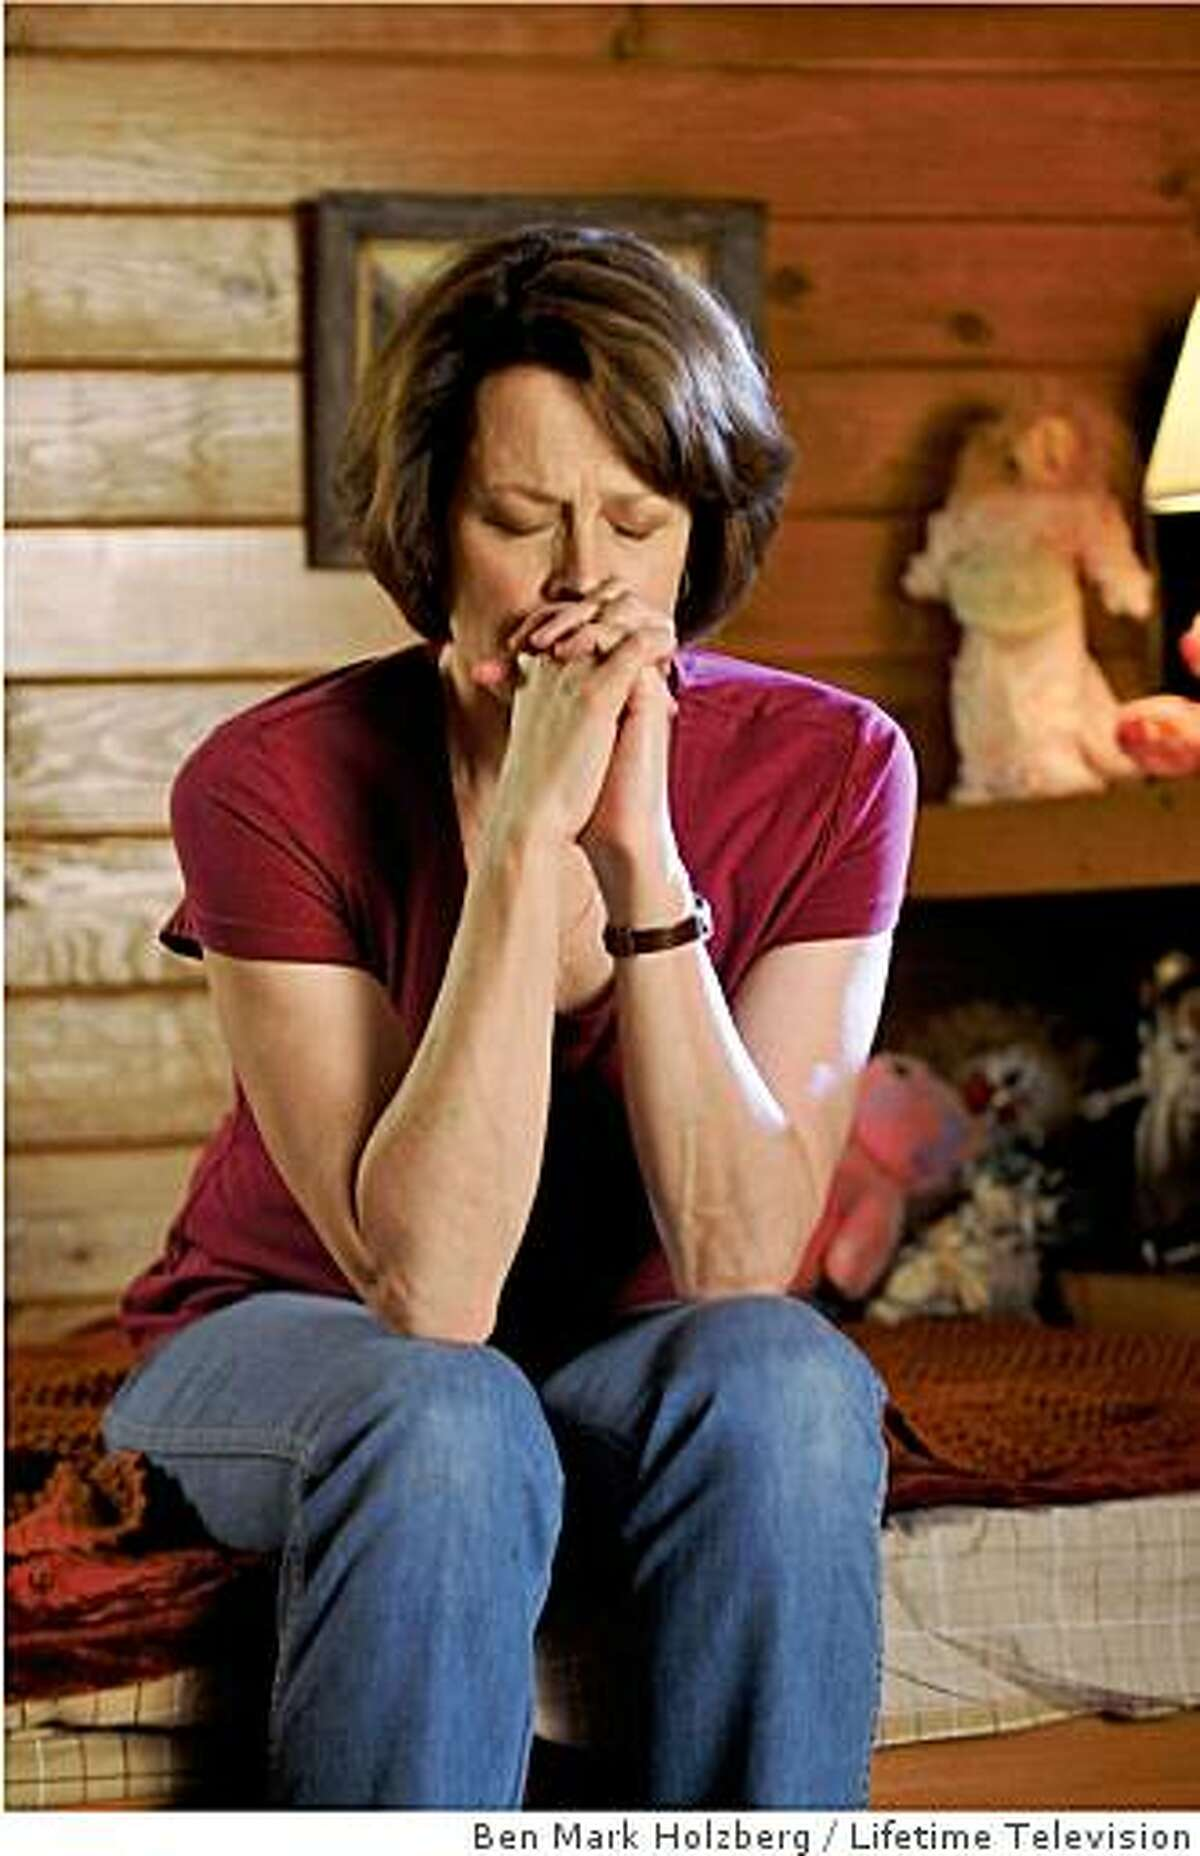 Golden Globe winner Sigourney Weaver stars in the true life story of Mary Griffith, a 1970's religious suburban wife who questions her faith after the suicide of her gay son in Lifetime Movie